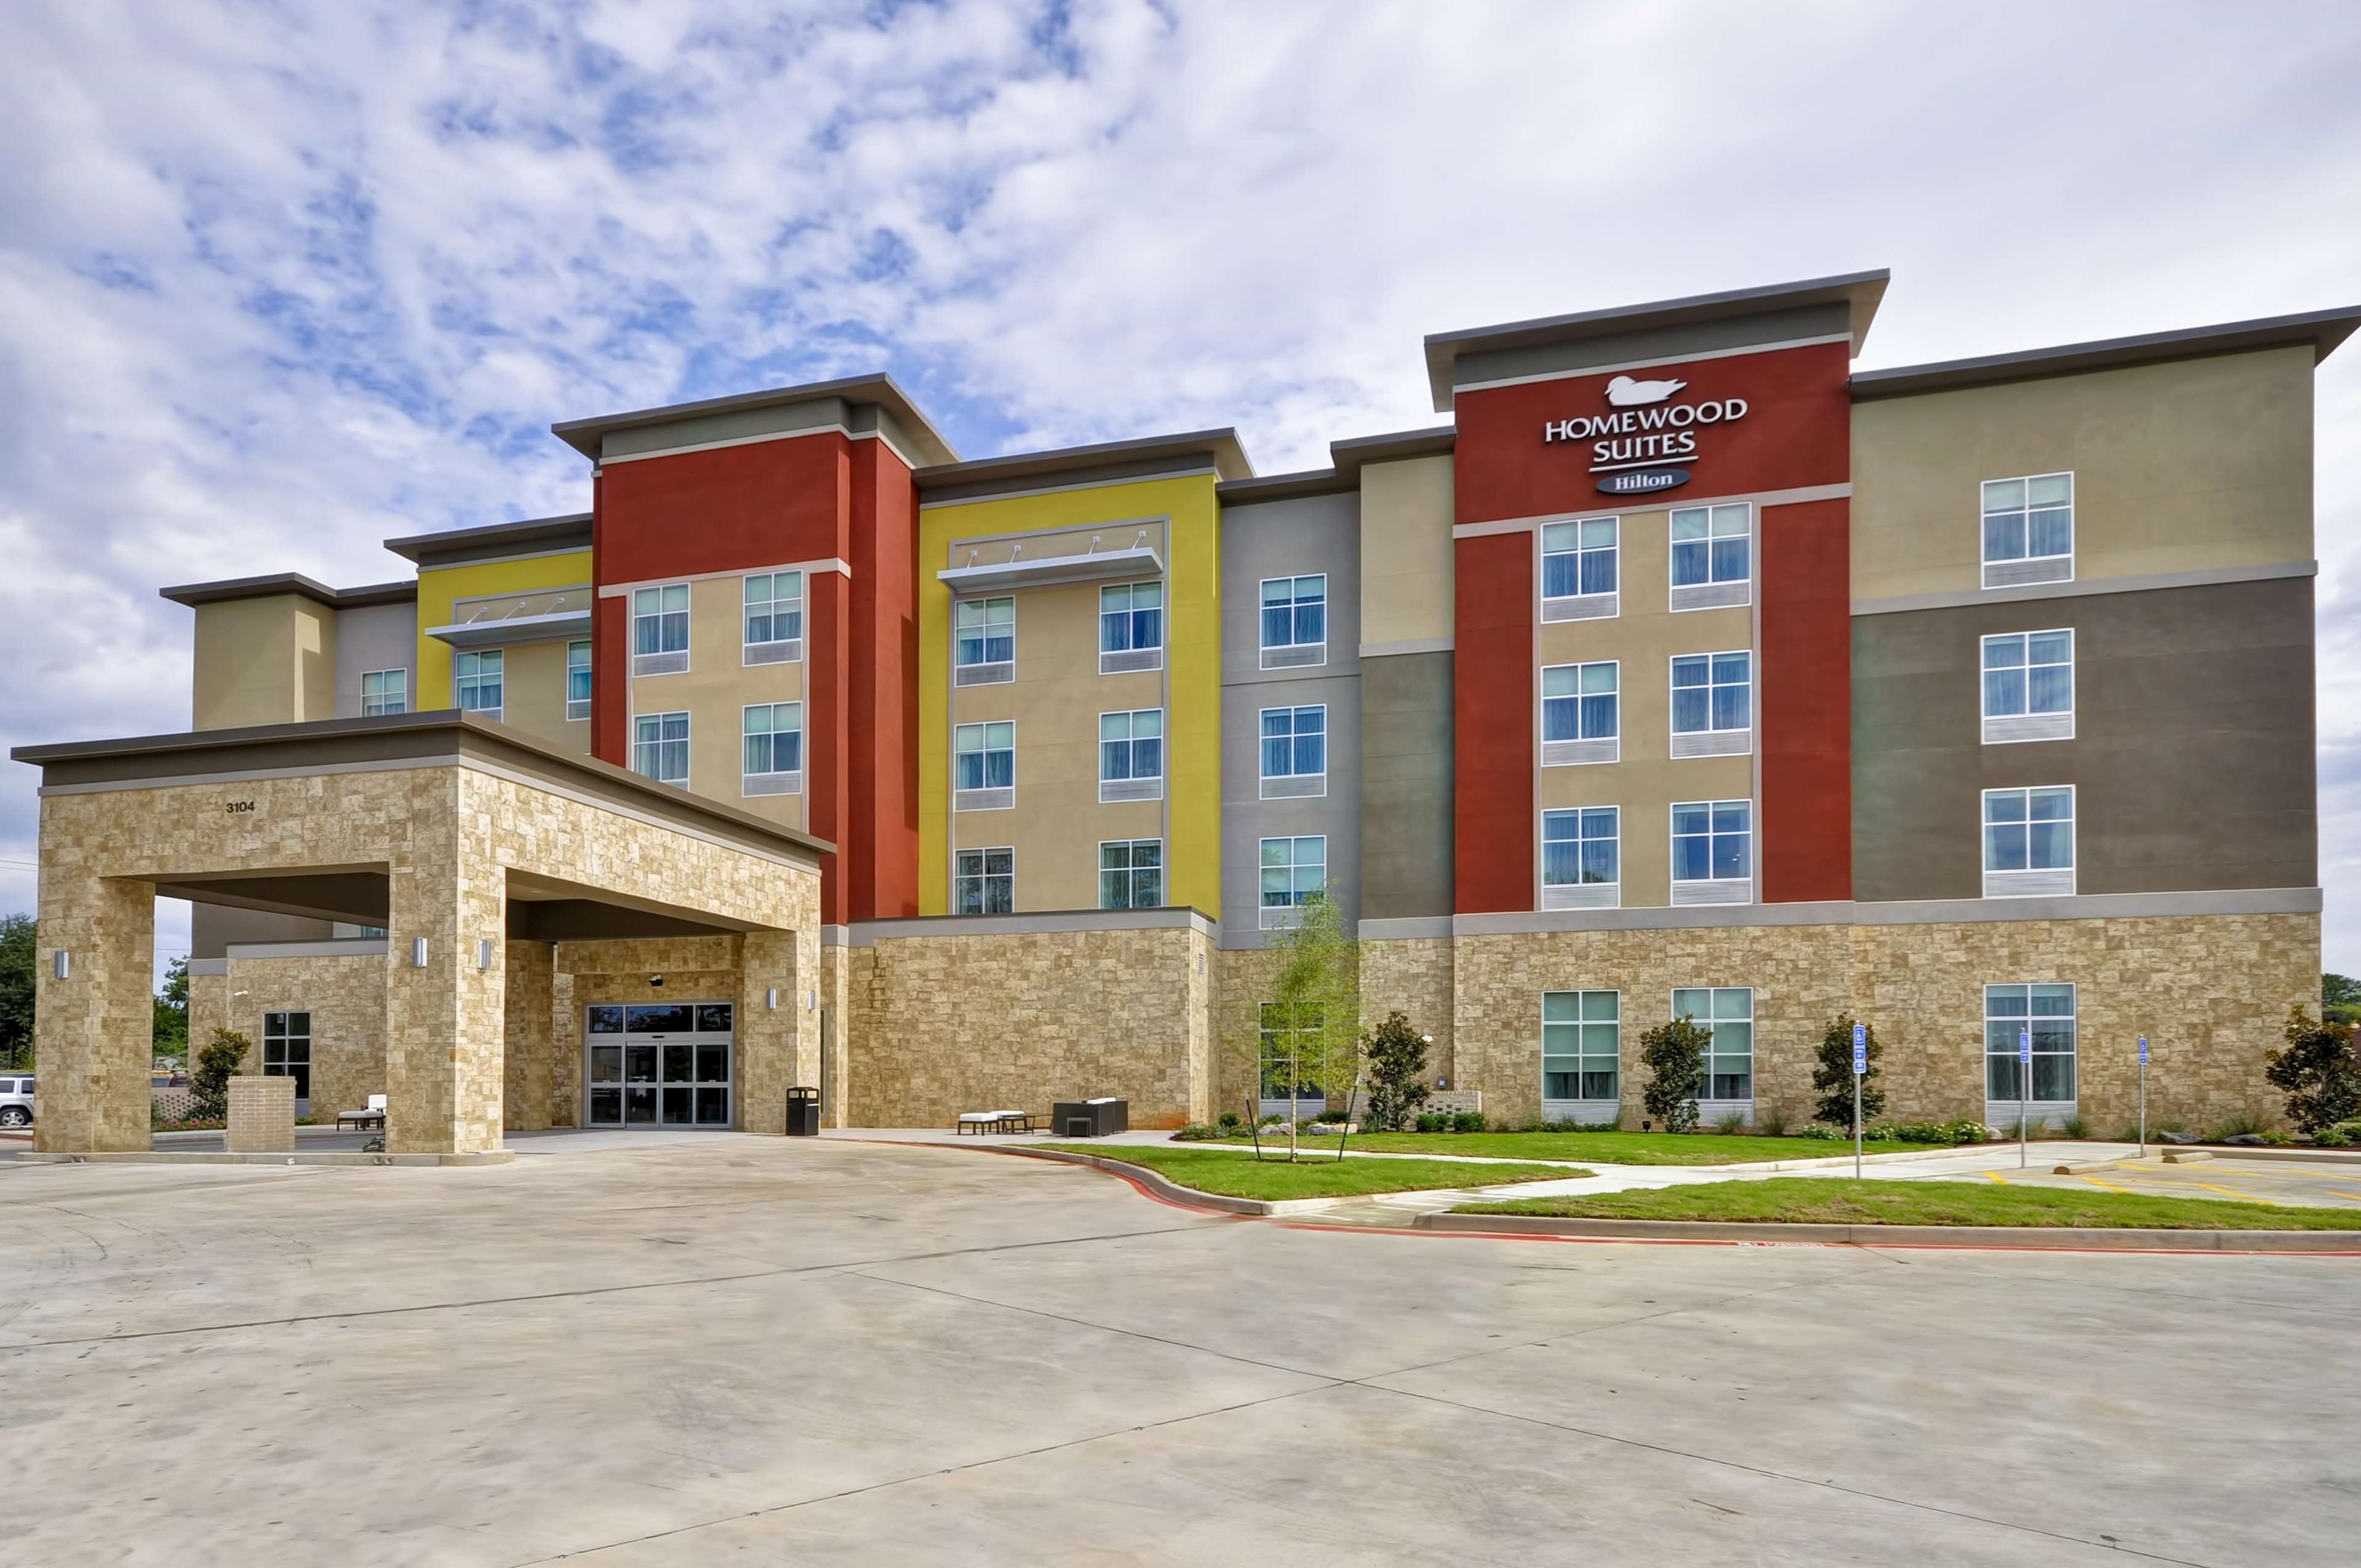 Homewood Suites by Hilton Tyler image 27